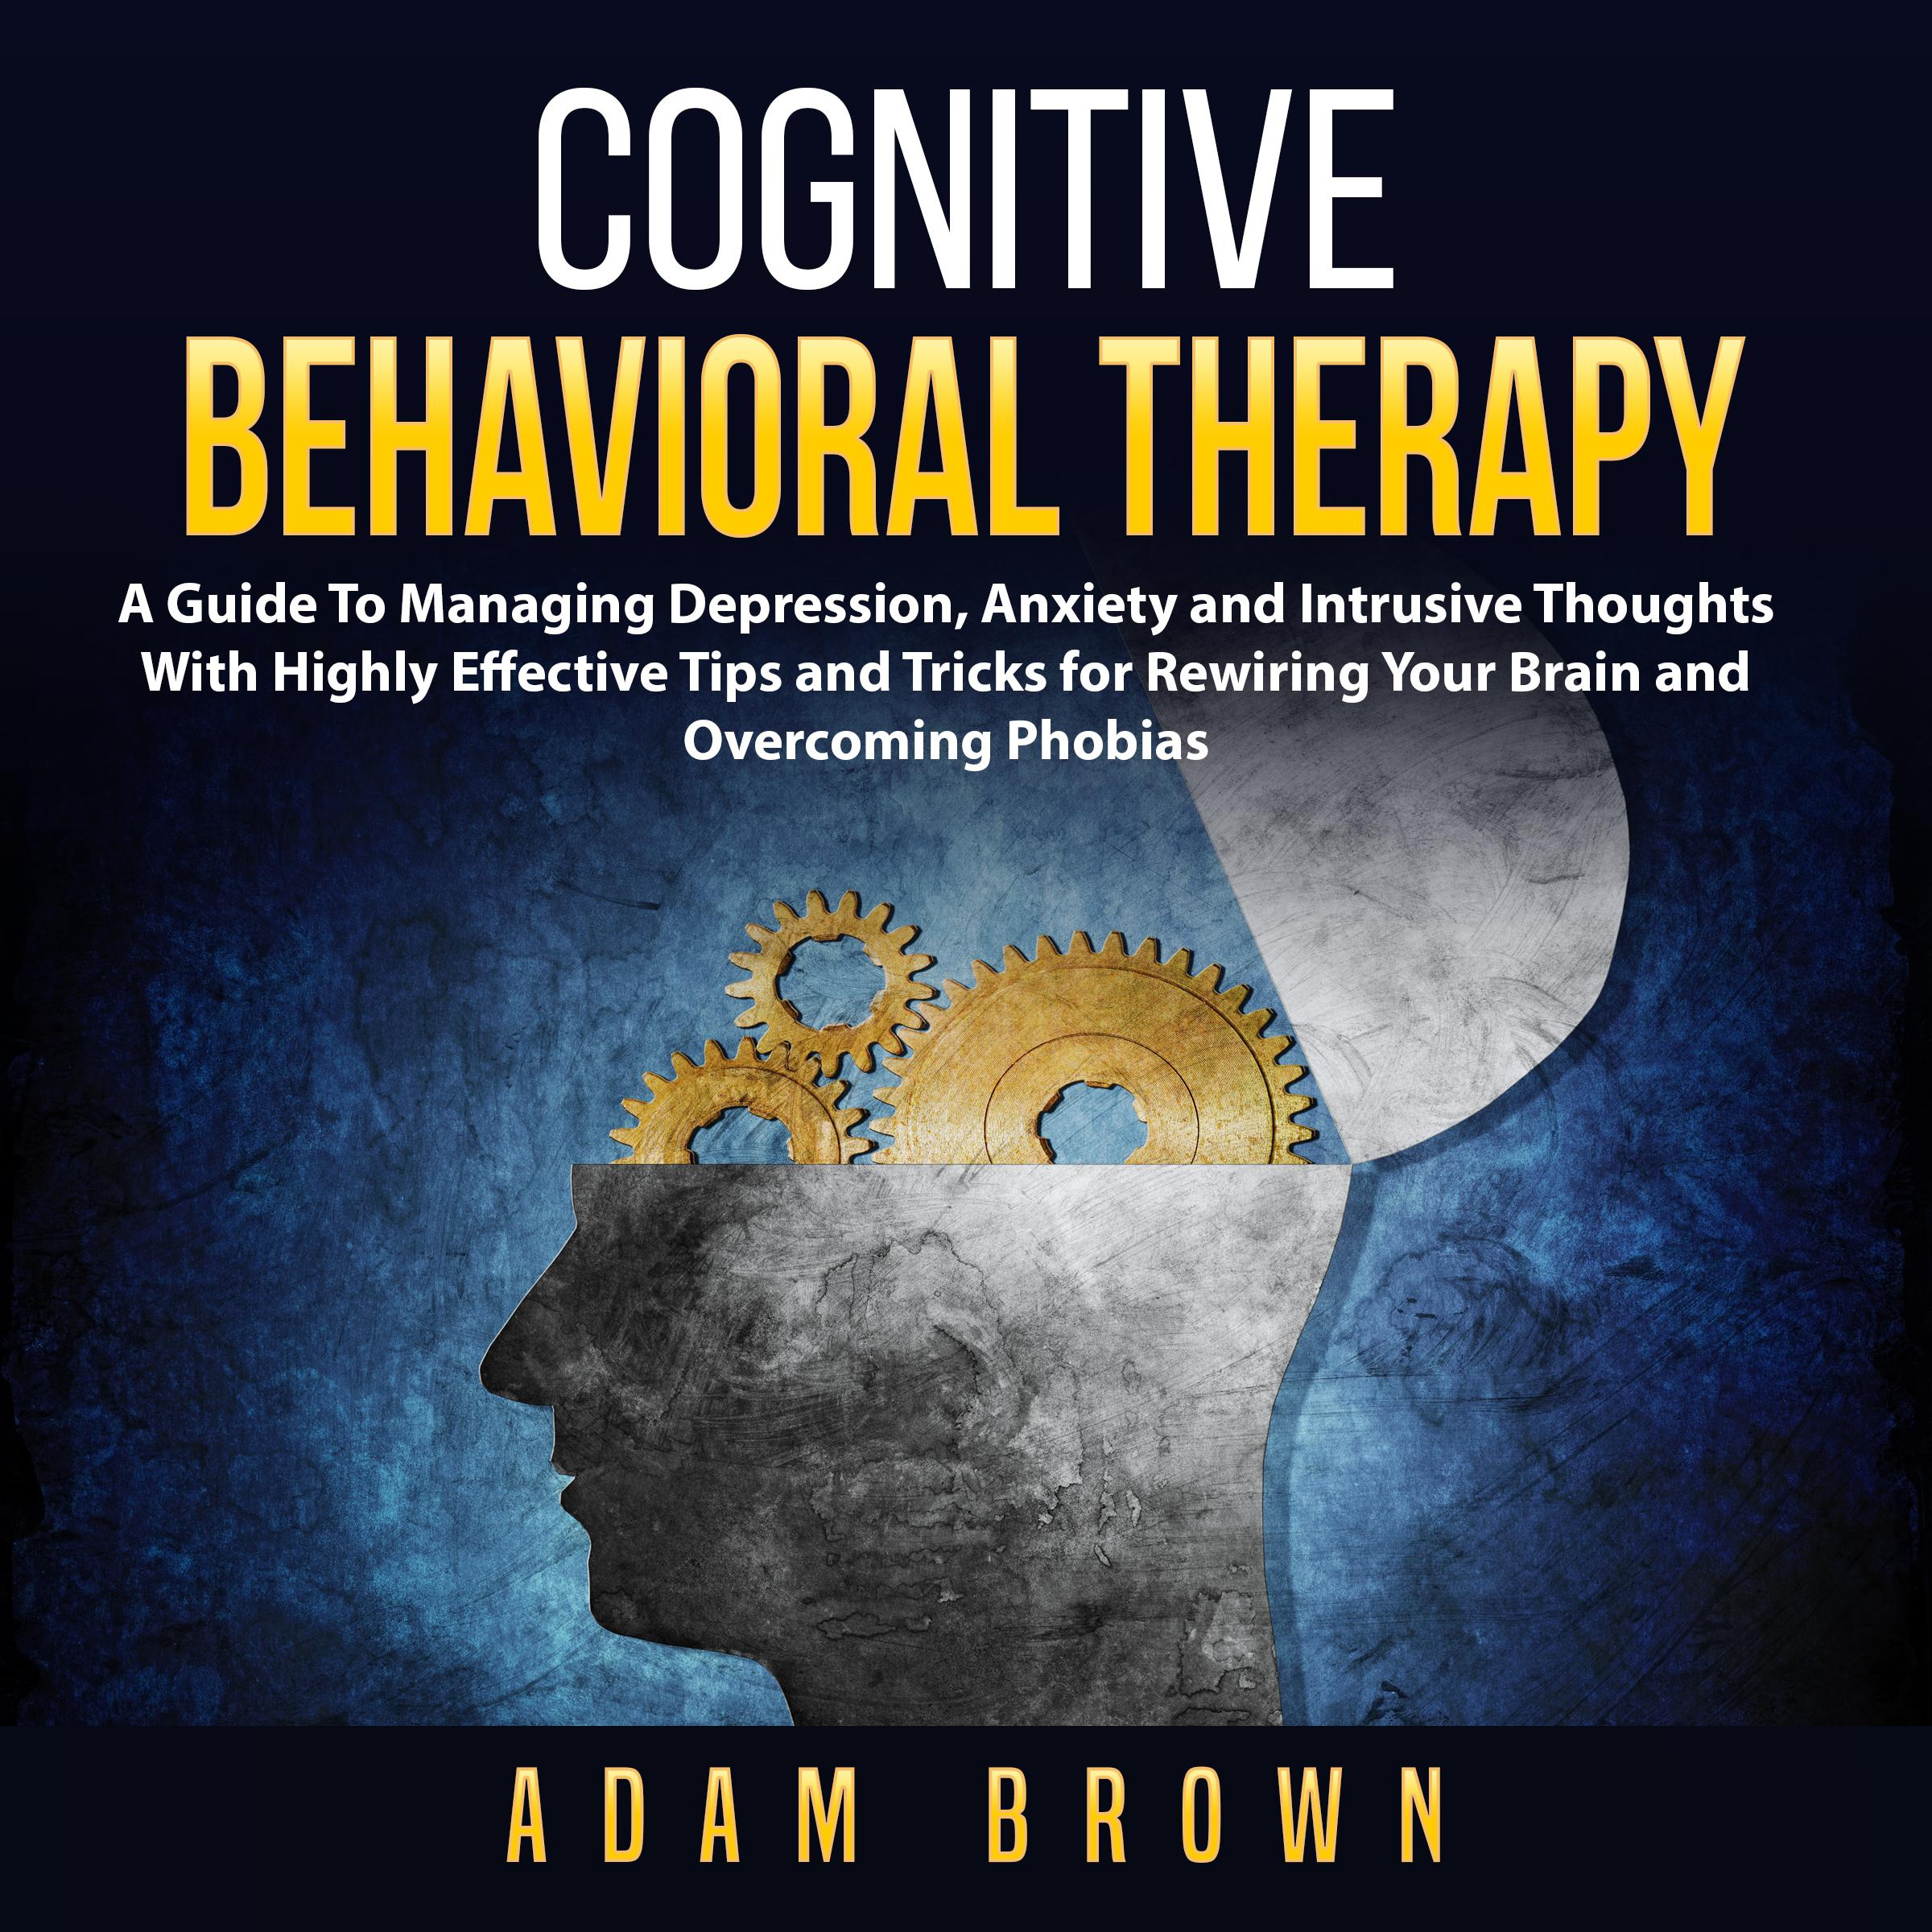 Printable Cognitive Behavioral Therapy: A Guide To Managing Depression, Anxiety and Intrusive Thoughts With Highly Effective Tips and Tricks for Rewiring Your Brain and Overcoming Phobias Audiobook Cover Art